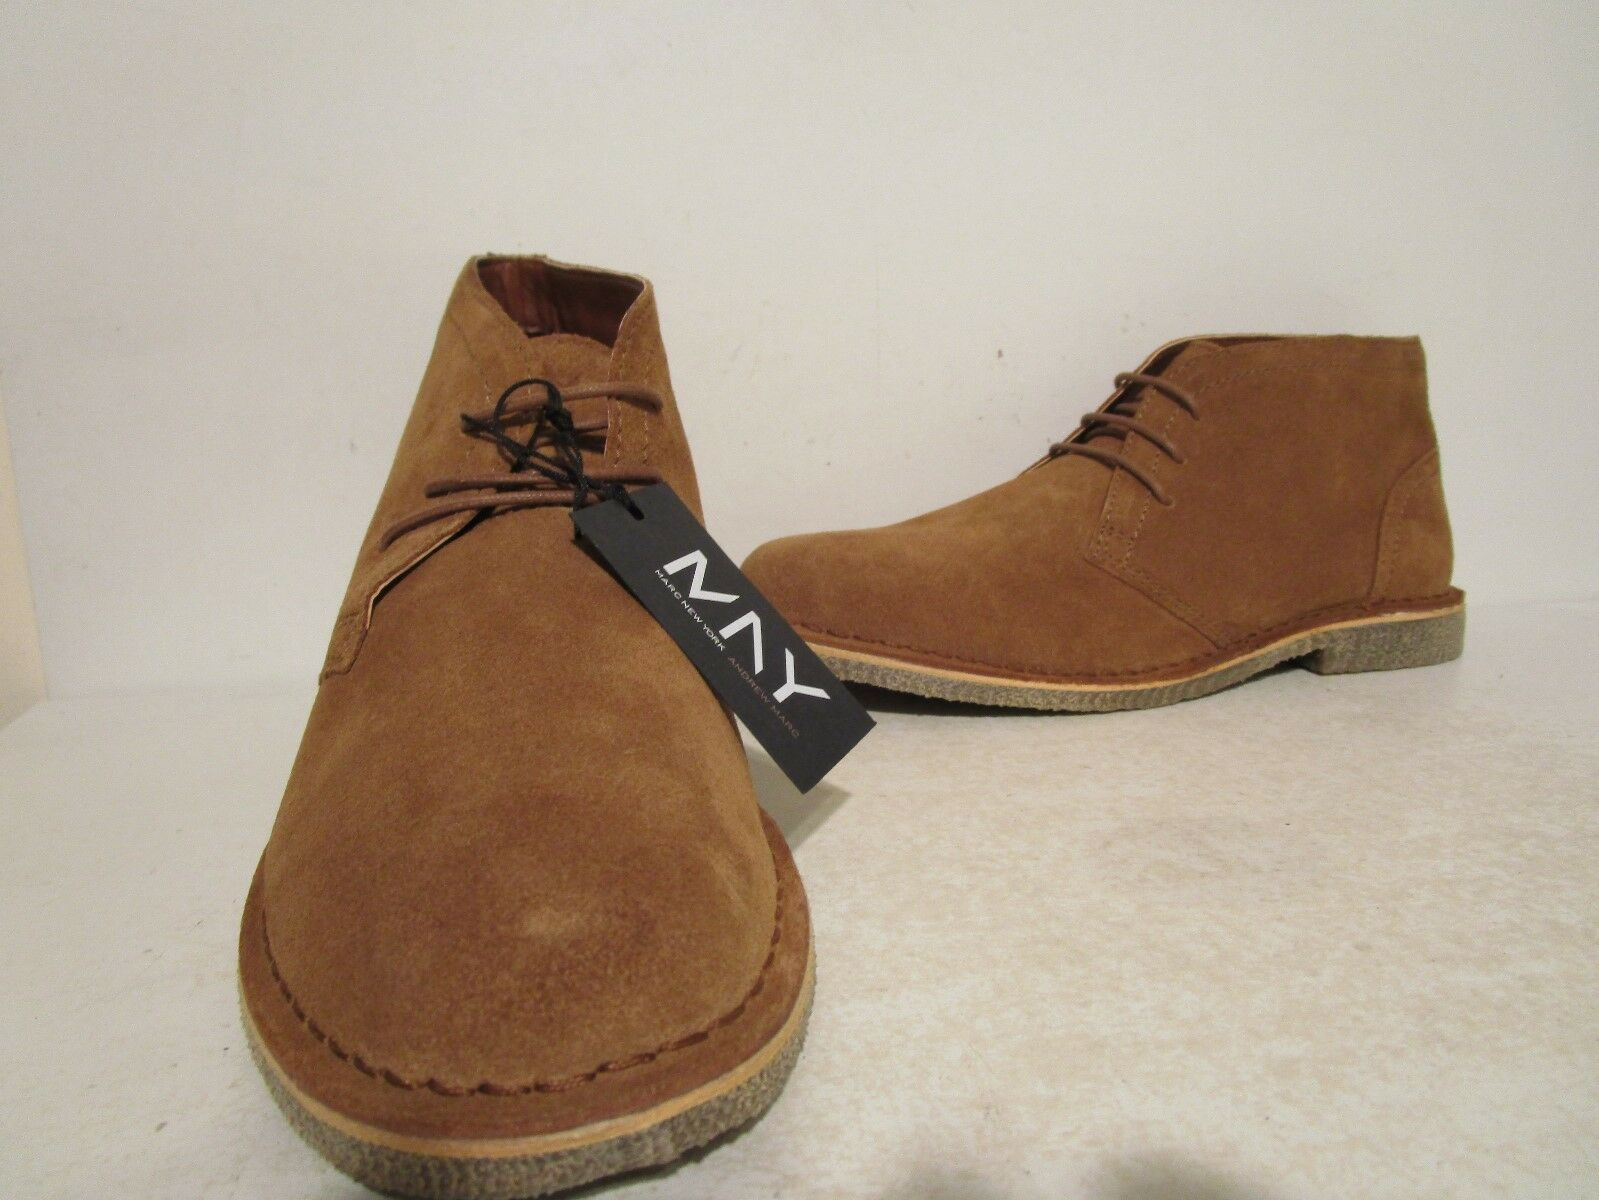 Andrew Marc Mens Walden Suede Ankle Fashion Chukka Boots Elm Tr Honey Size 9 D